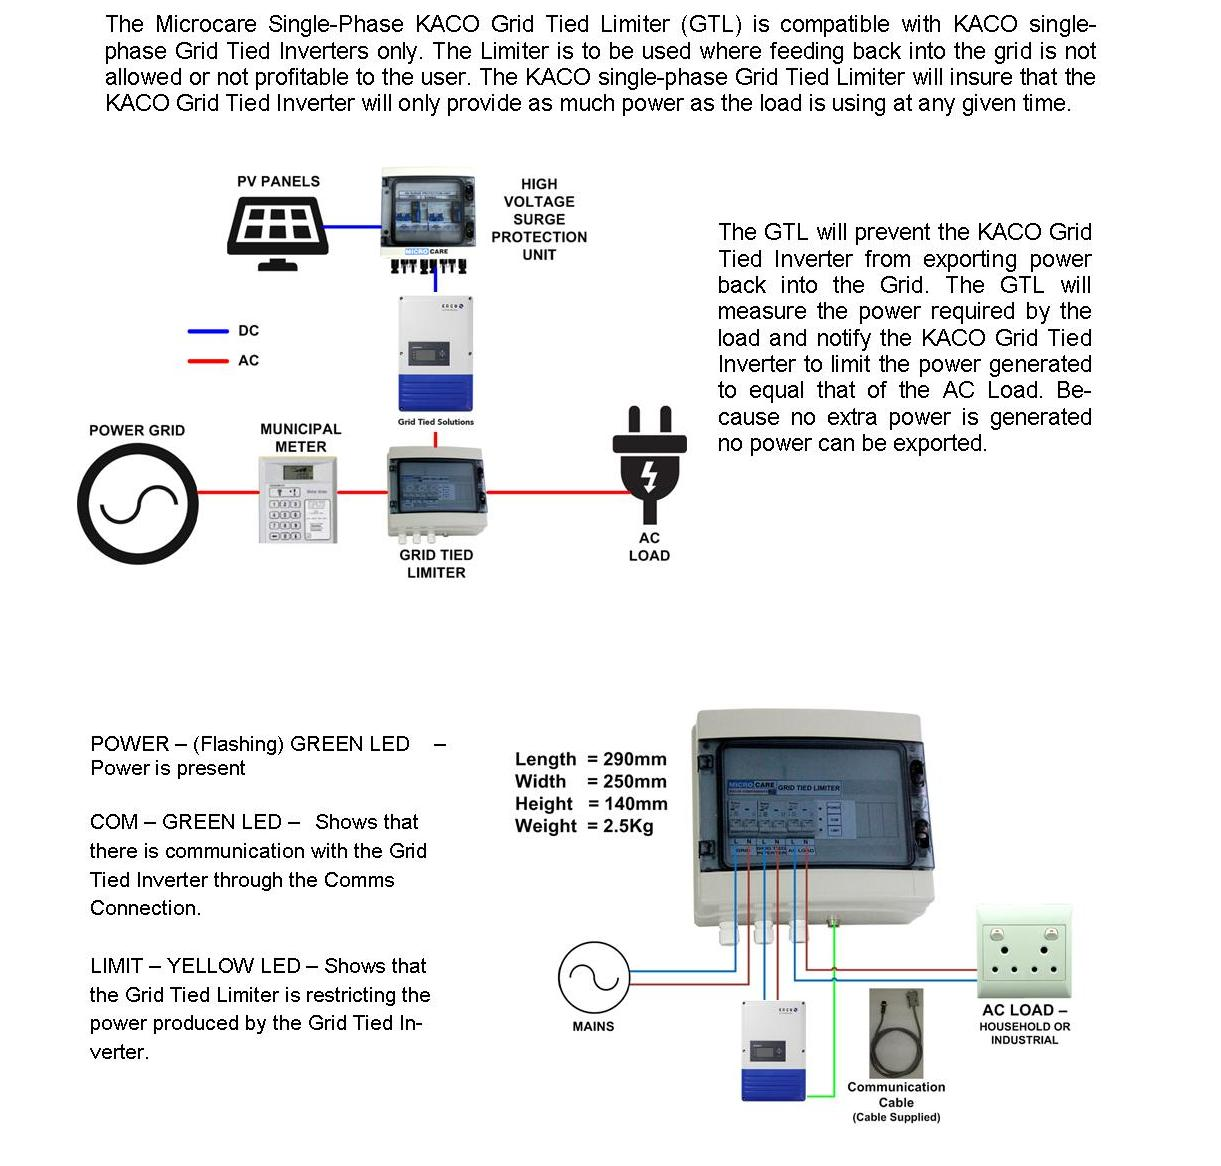 hight resolution of the kaco single phase grid tied limiter is designed for kaco single phase grid tied inverters only and is not compatible with other single phase inverters